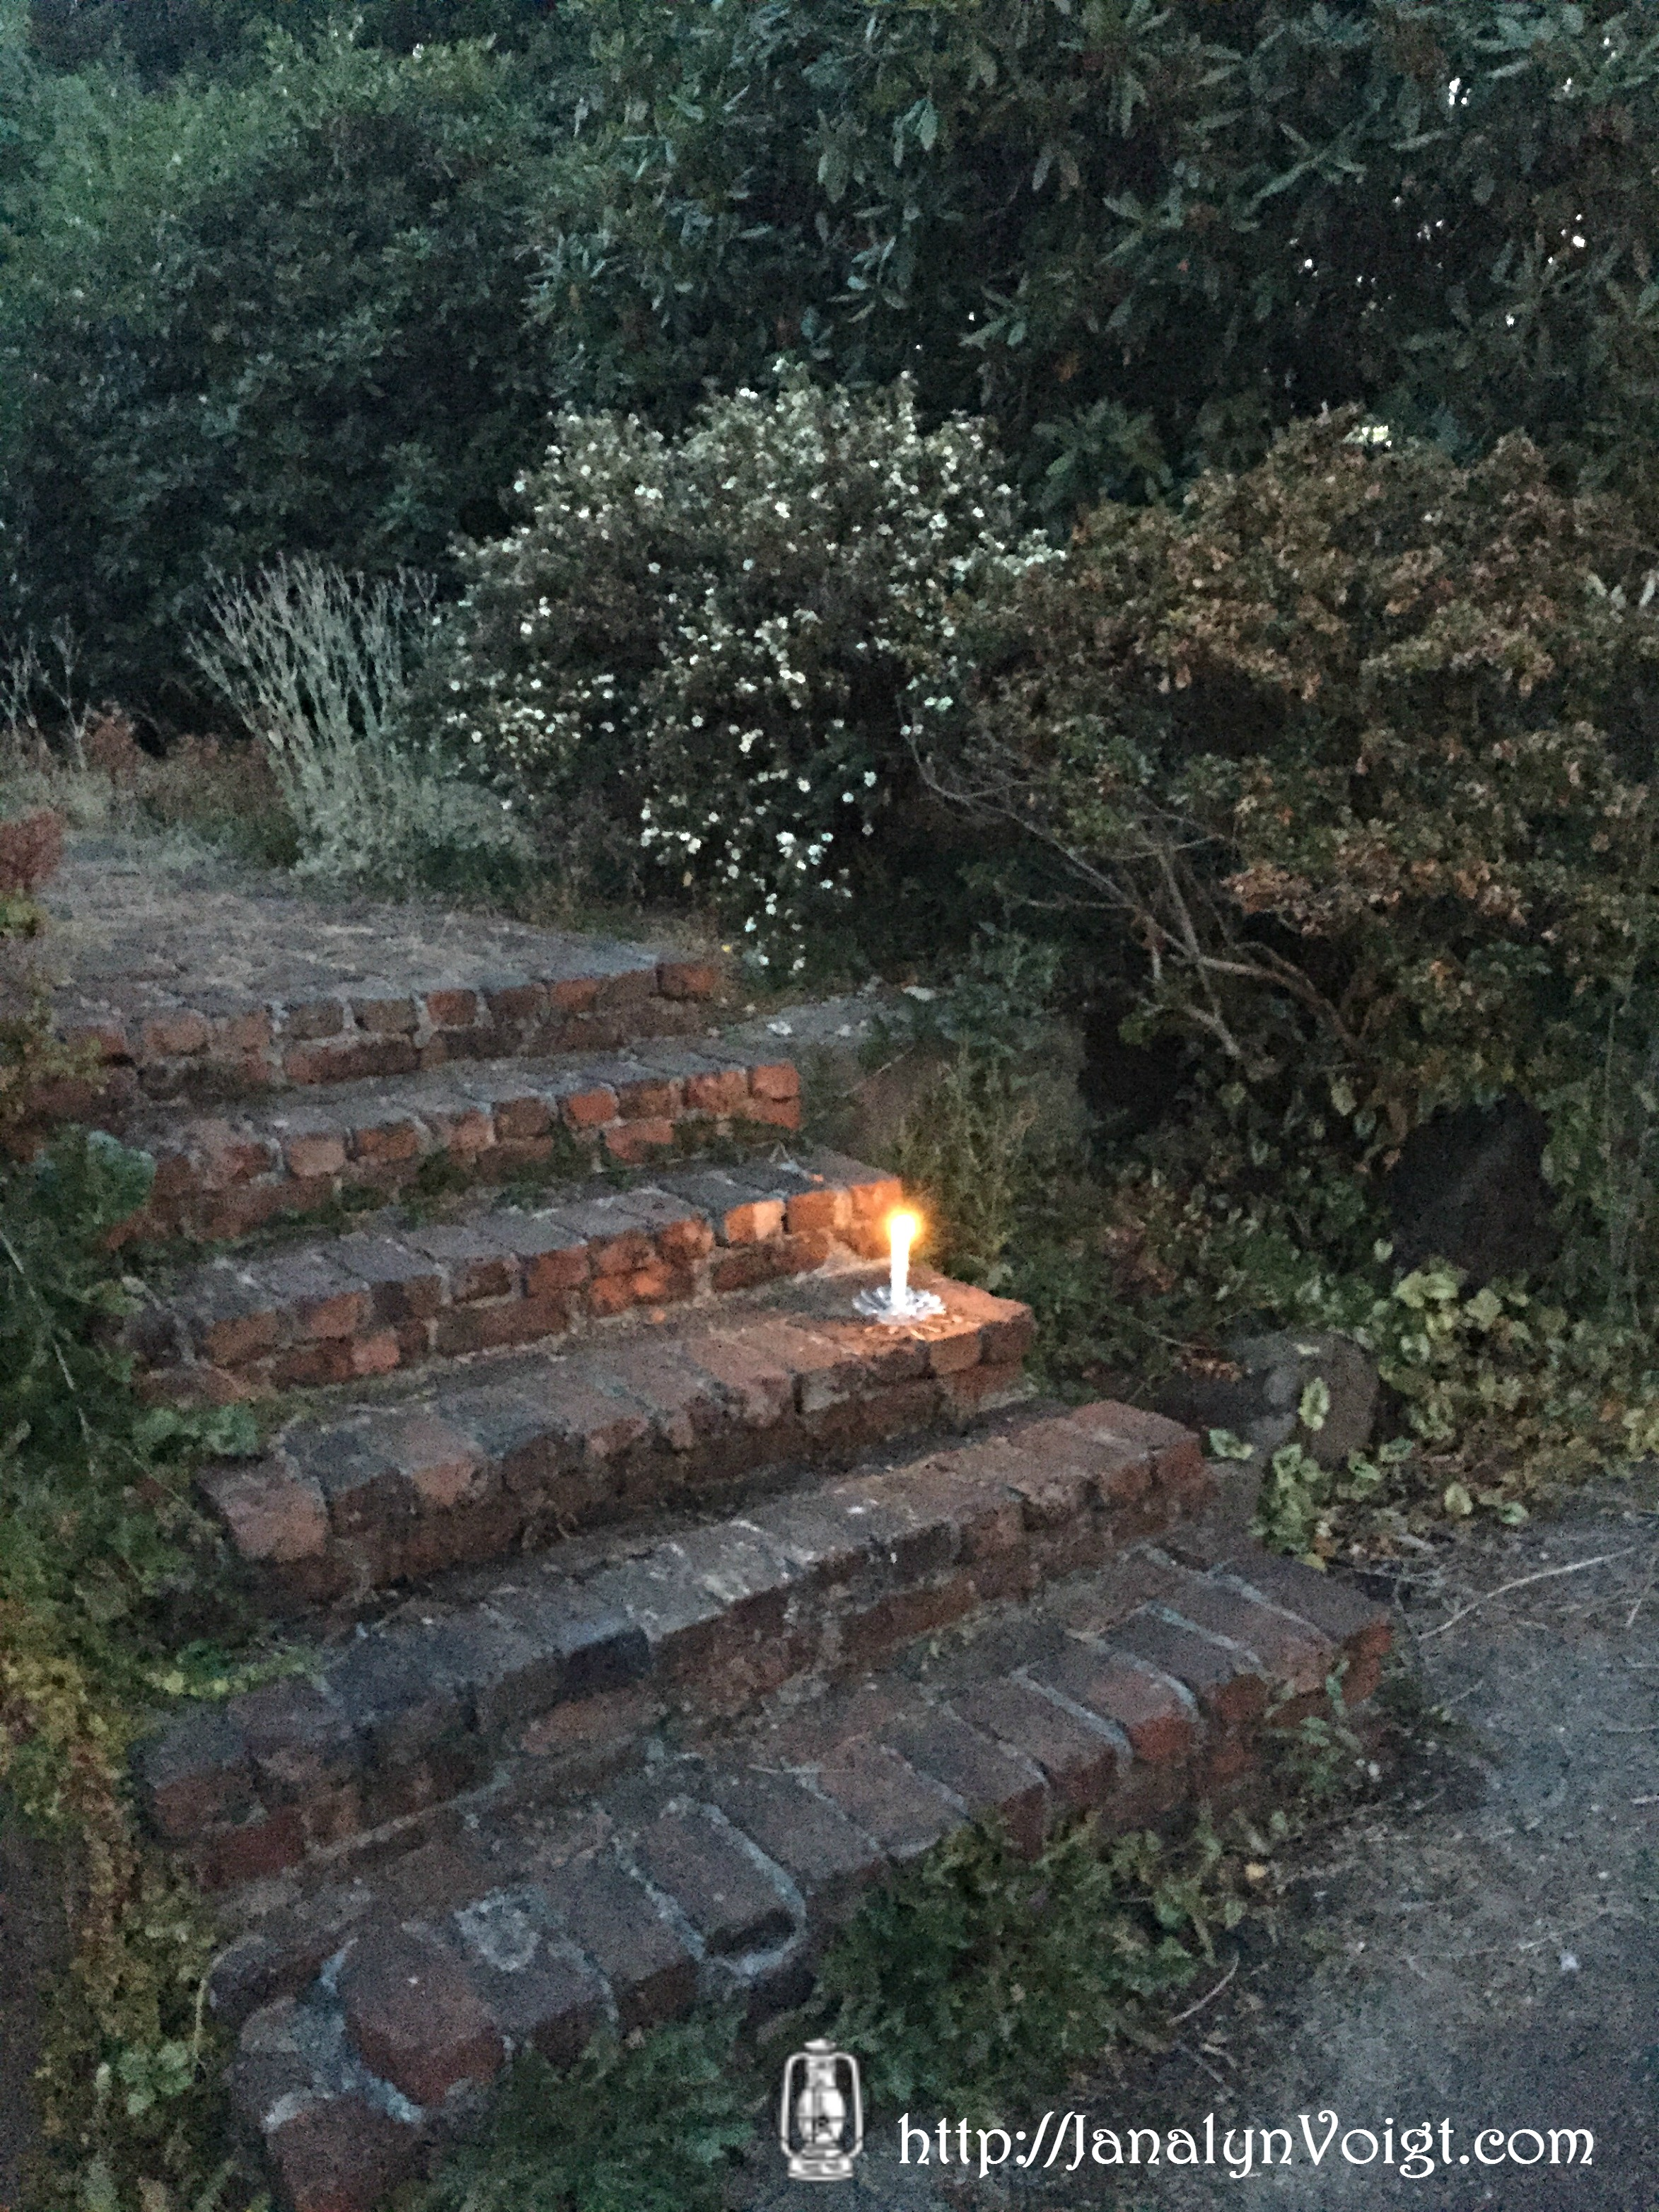 Visual Writing Prompts: Garden at Dusk from Janalyn Voigt